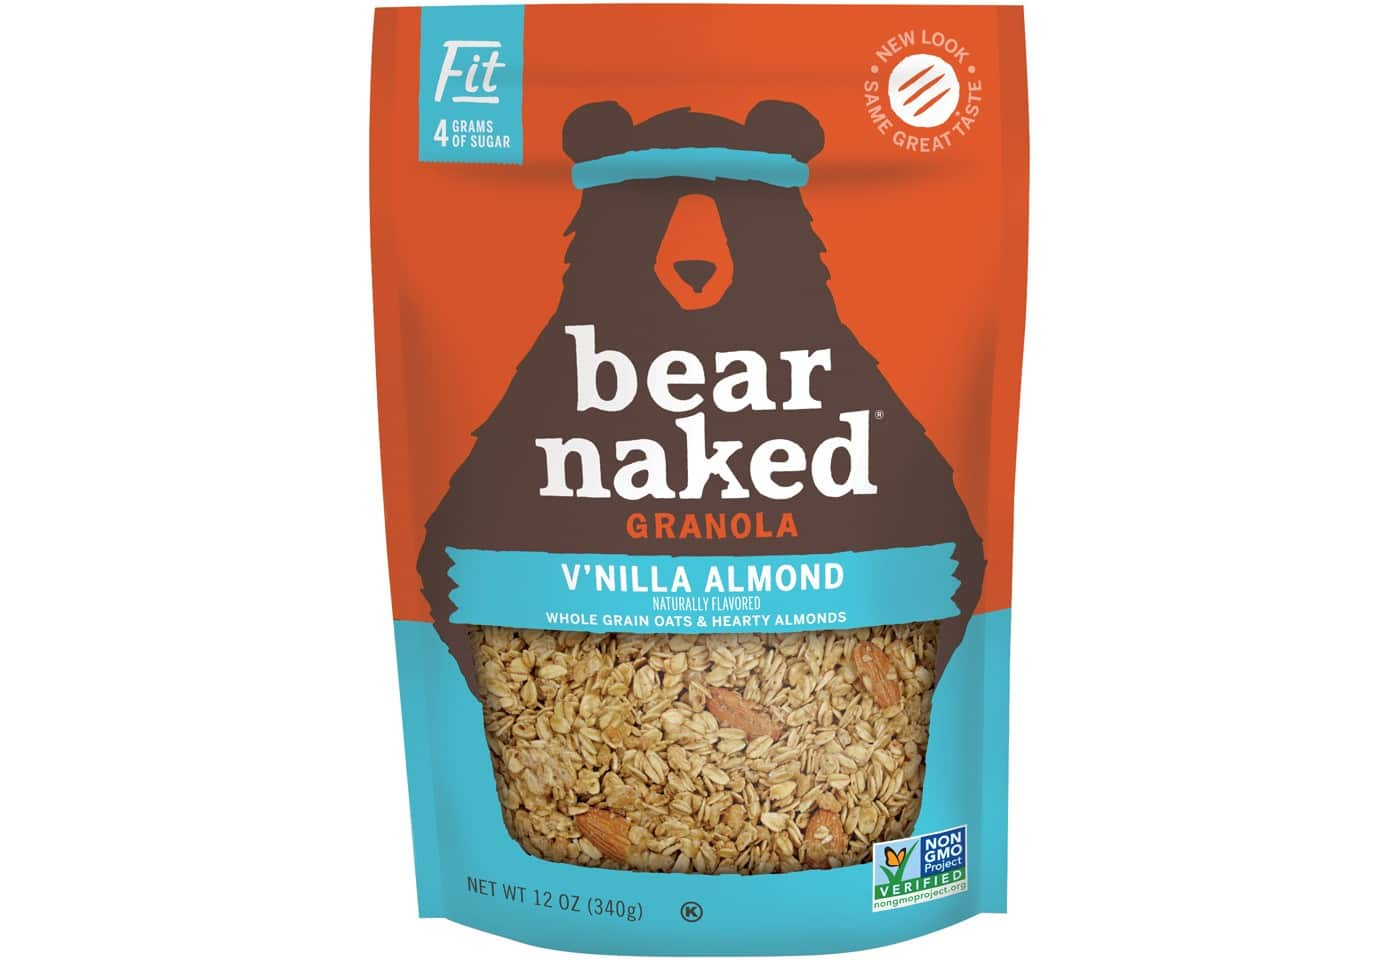 Kroger Plus Customers Bear Naked Granola 11 12 Ounces 0 29 After 3 00 Off Coupon Free When Combined With 5 Off 5 Lavahotdeals Com